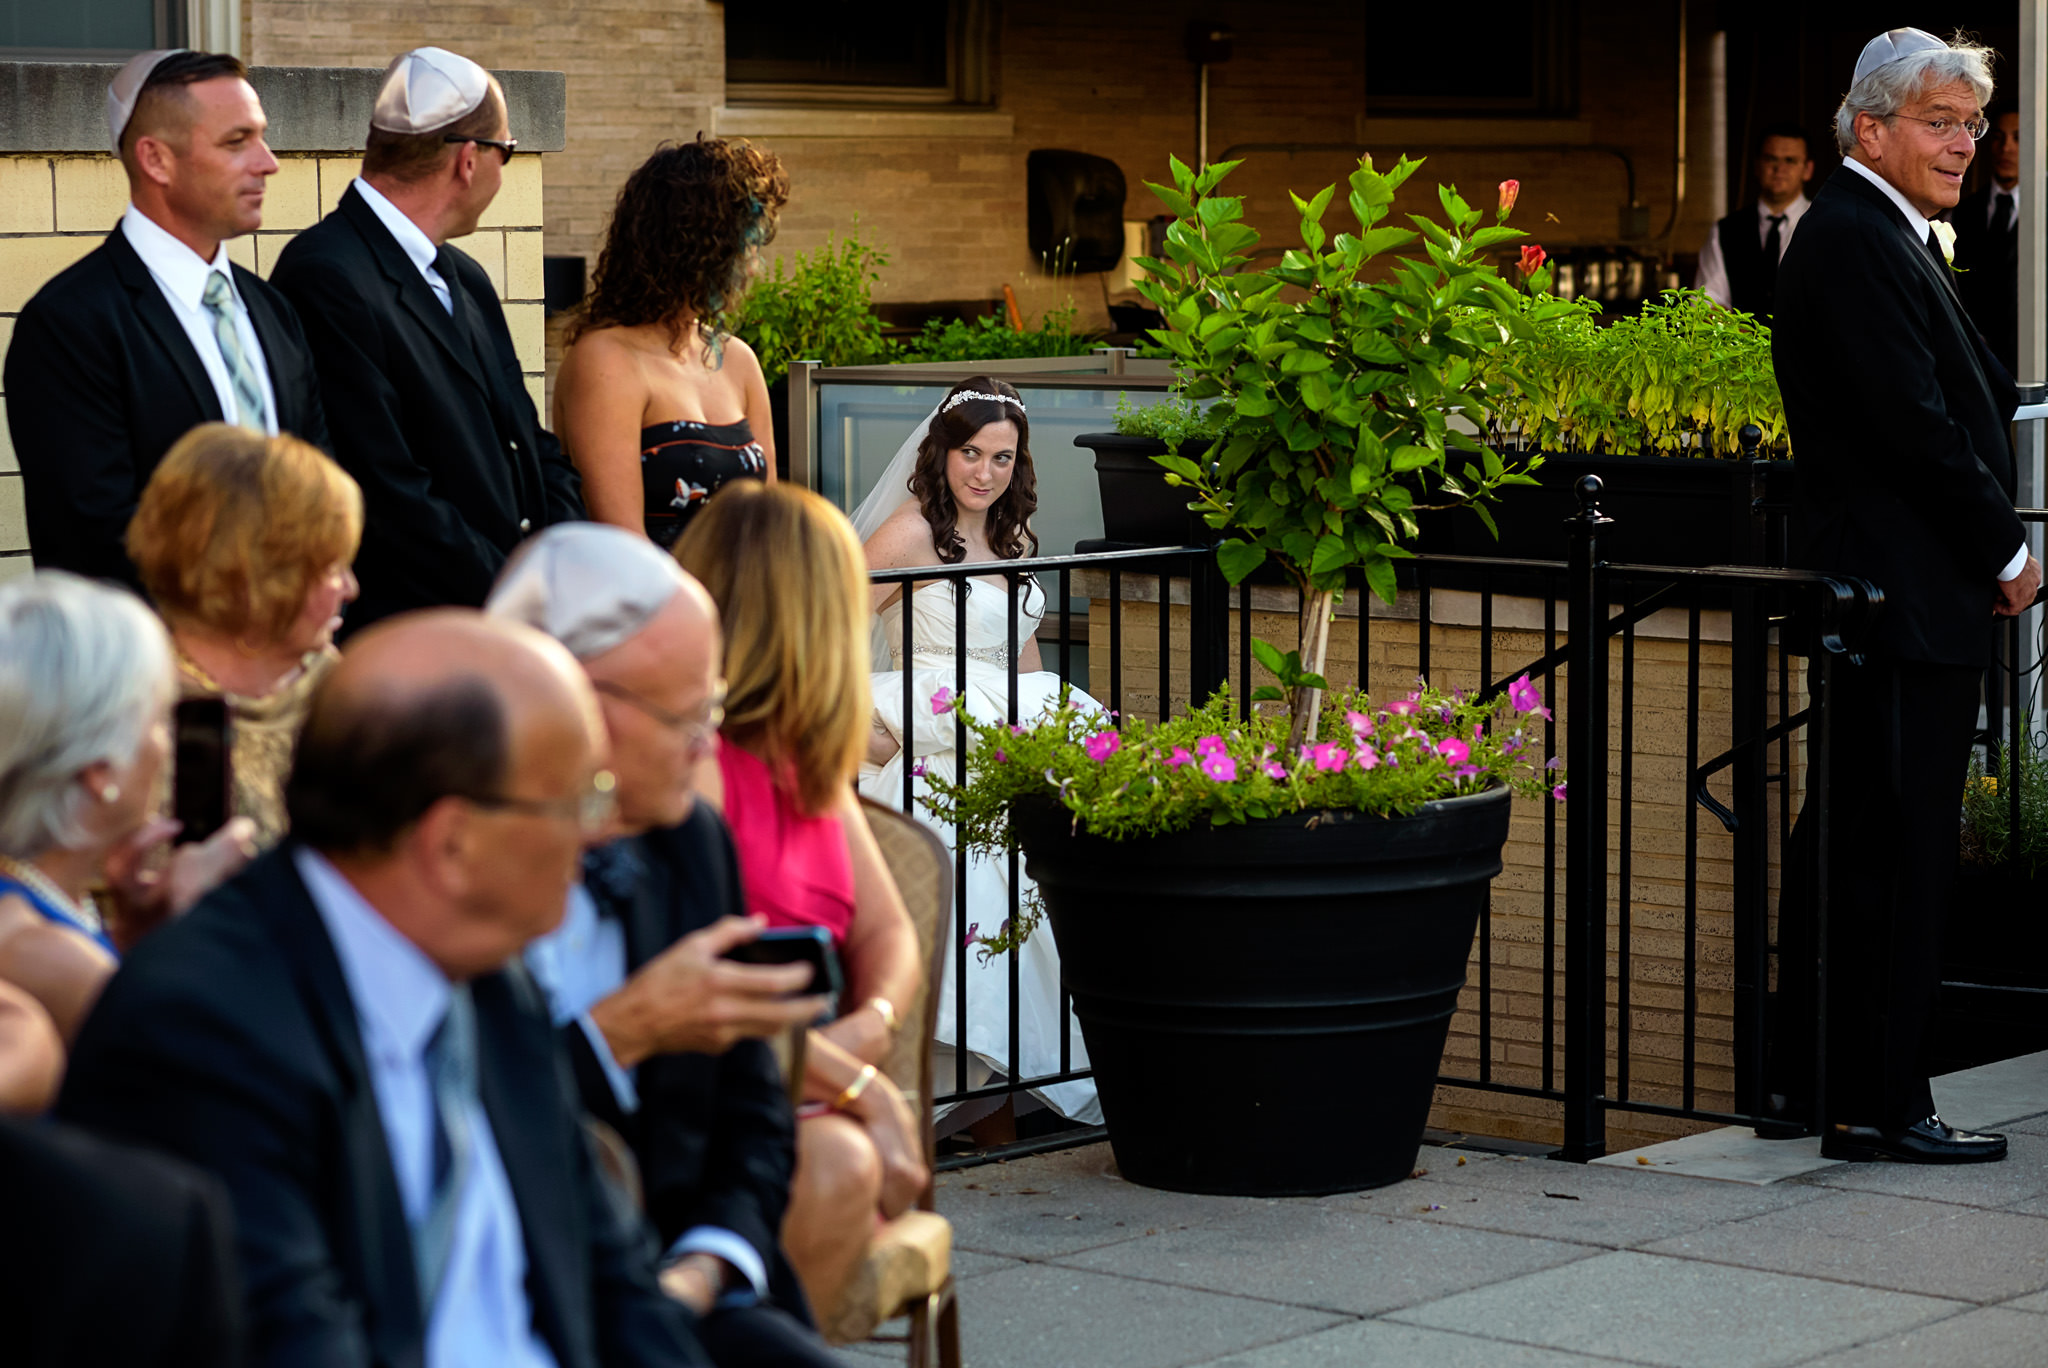 Lauren and Jason's wedding at the University Club in Pittsburgh, Penn.